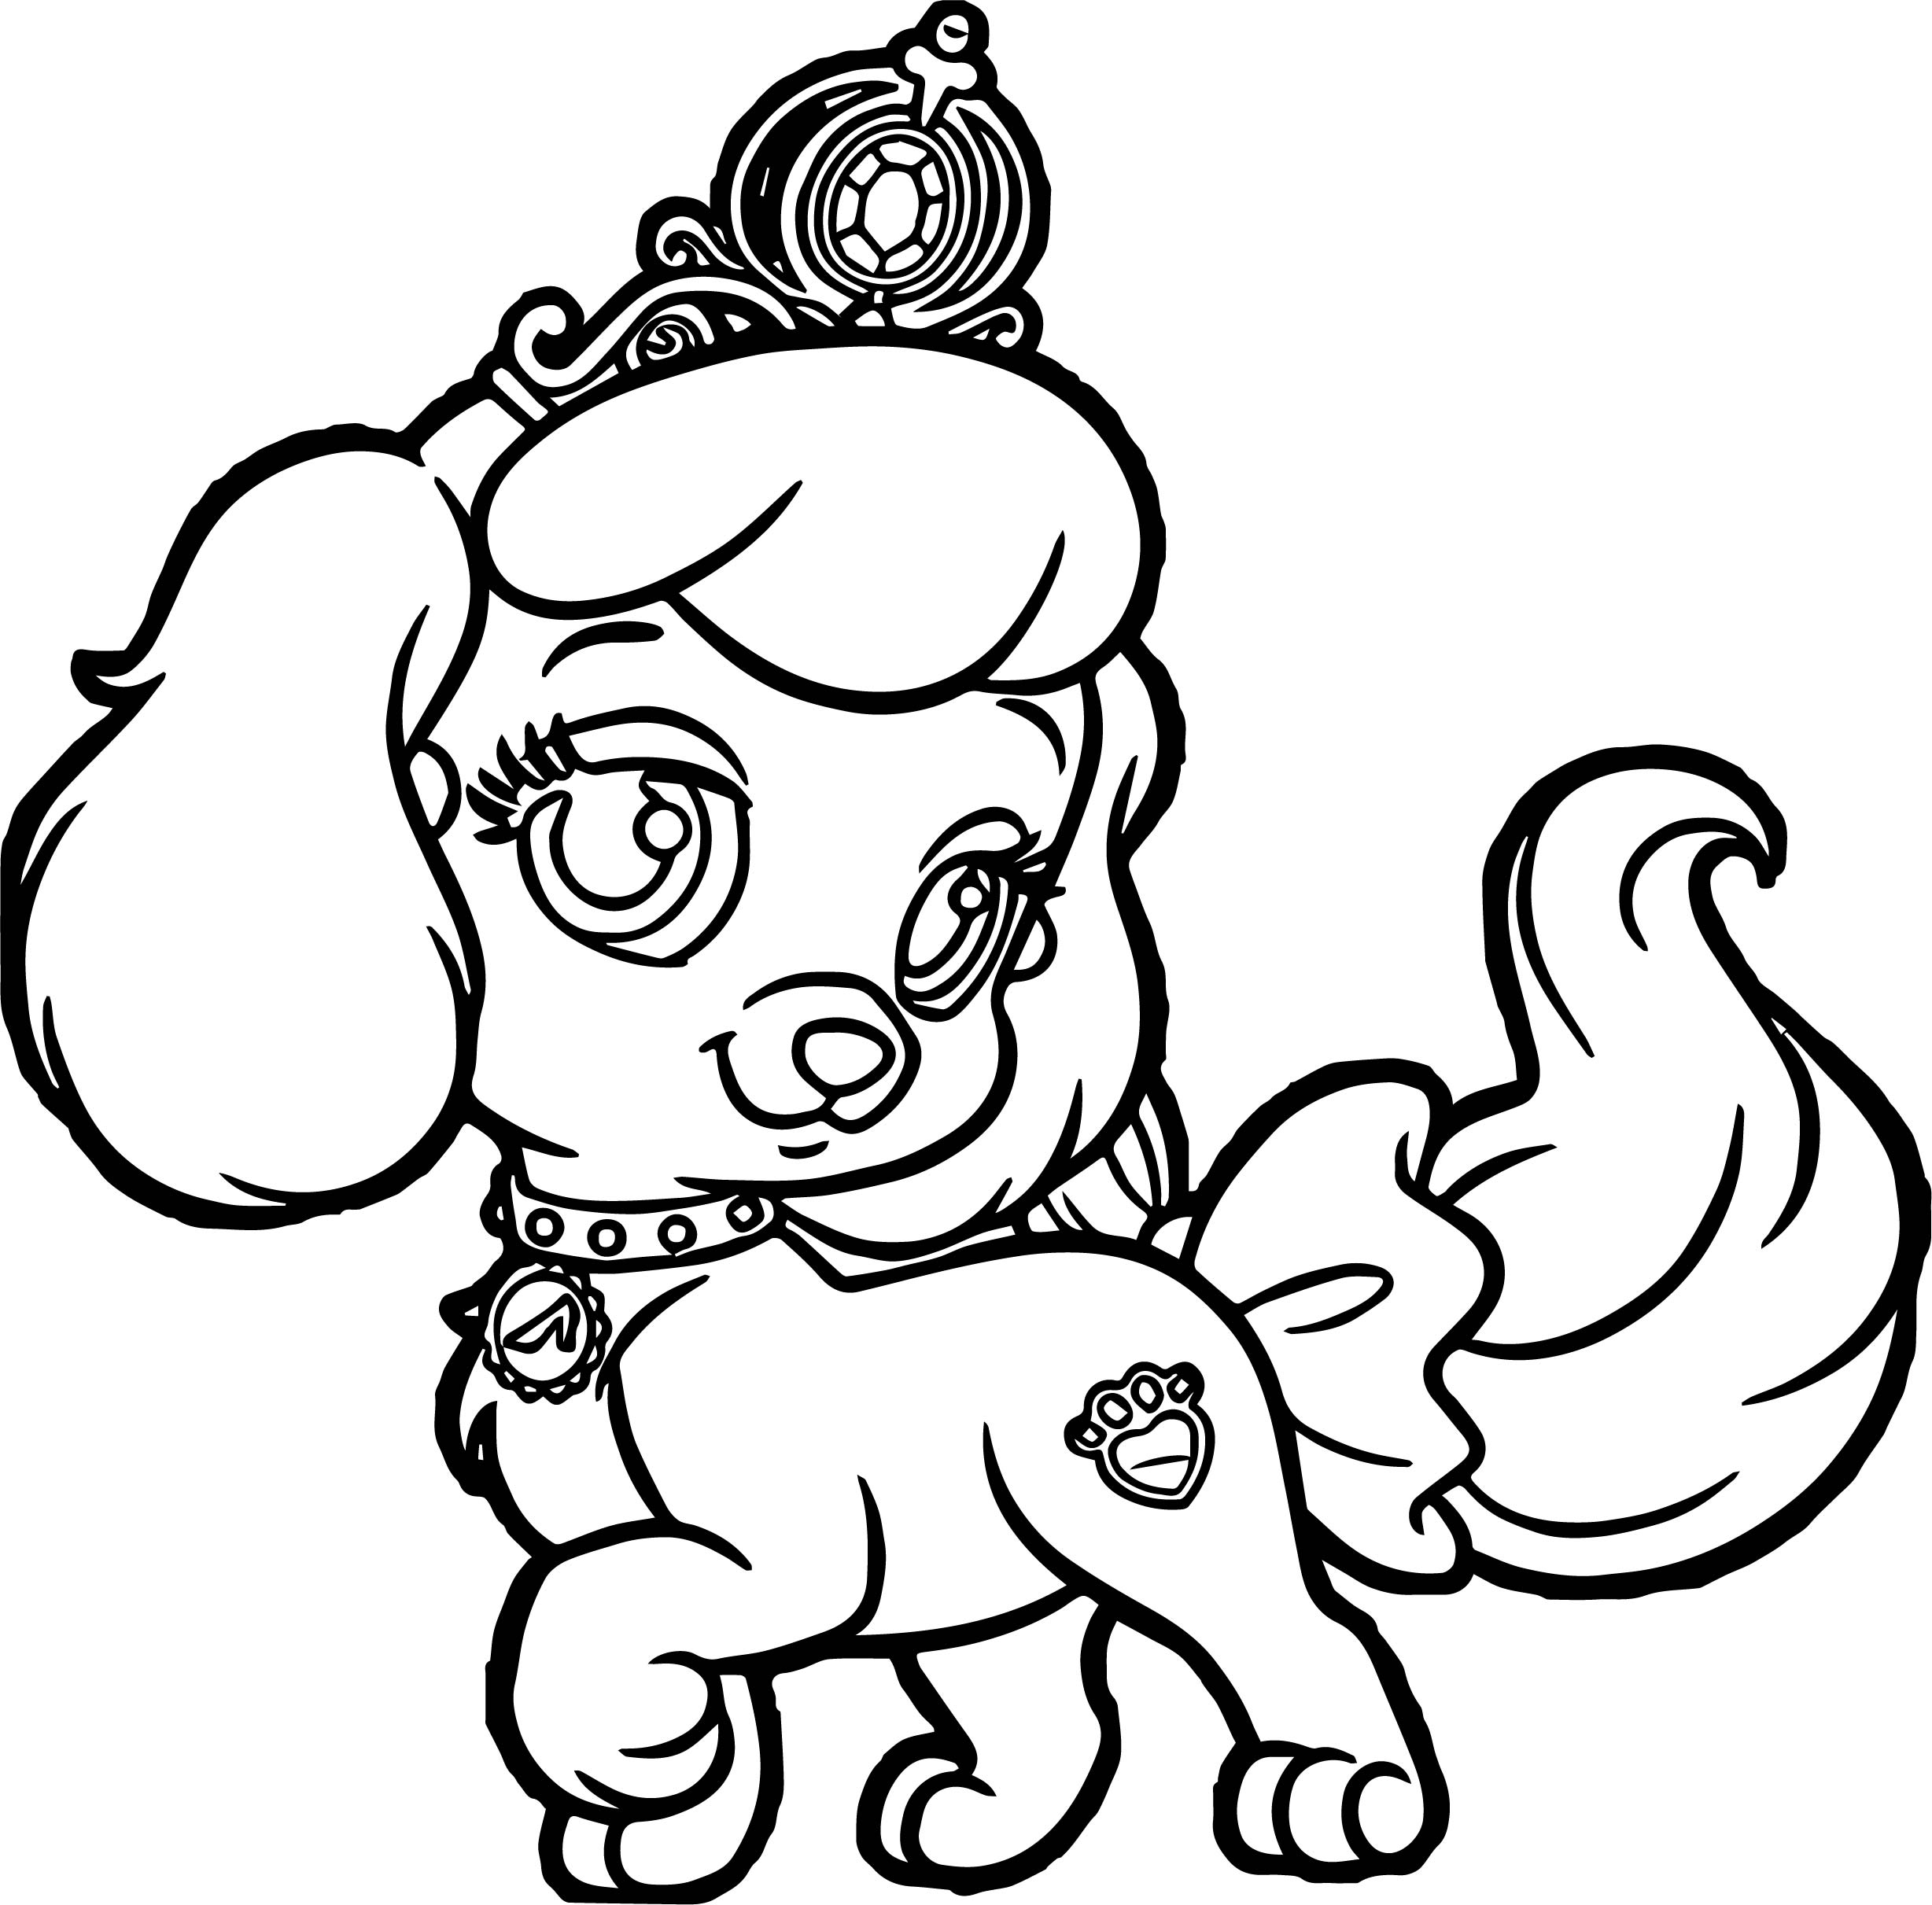 Girl pumpkin pup puppy dog coloring page for Coloring pages of dogs